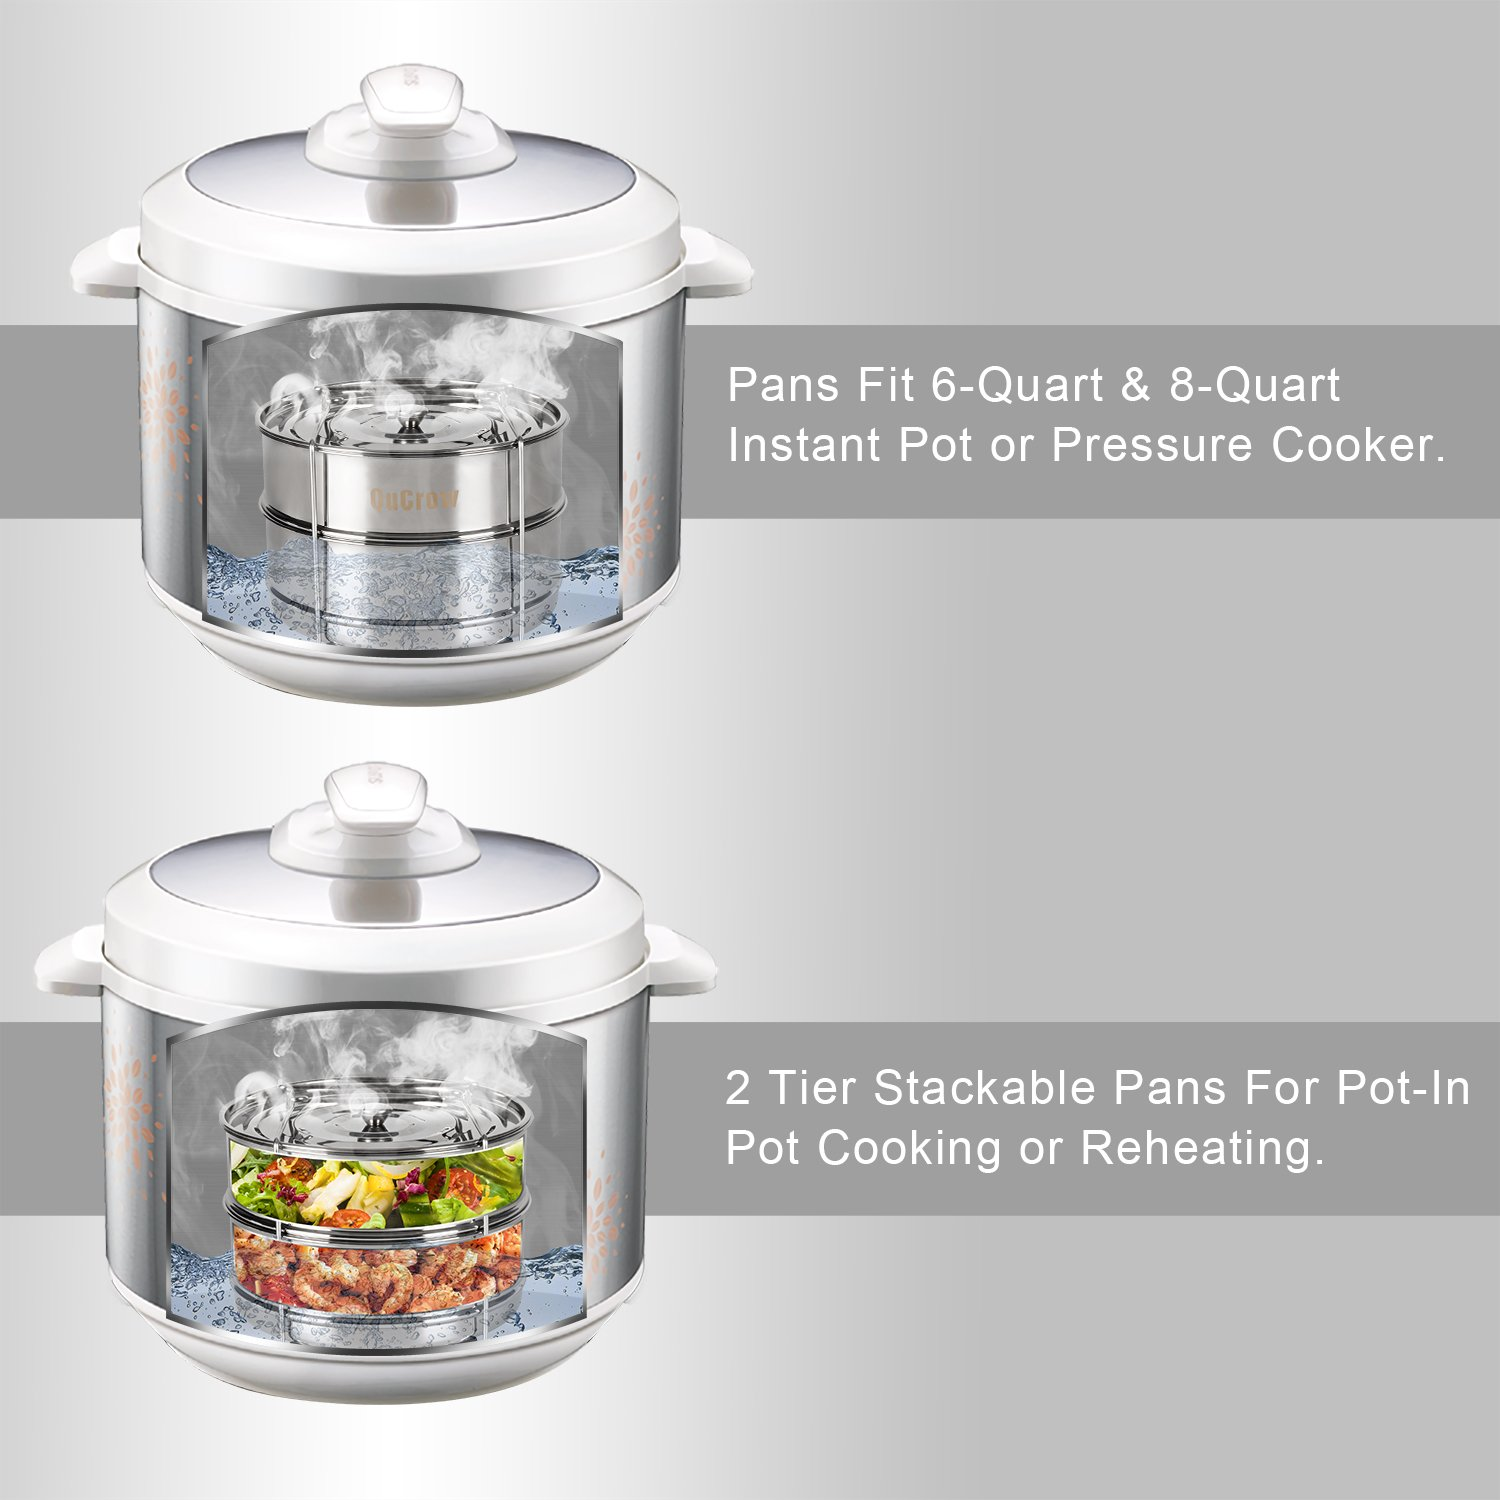 QuCrow Stackable Steamer Insert Pan with Sling - Stainless Steel Food Steamer for 6/8 Qt Pressure Cooker – Instant Pot Accessary by QuCrow (Image #3)